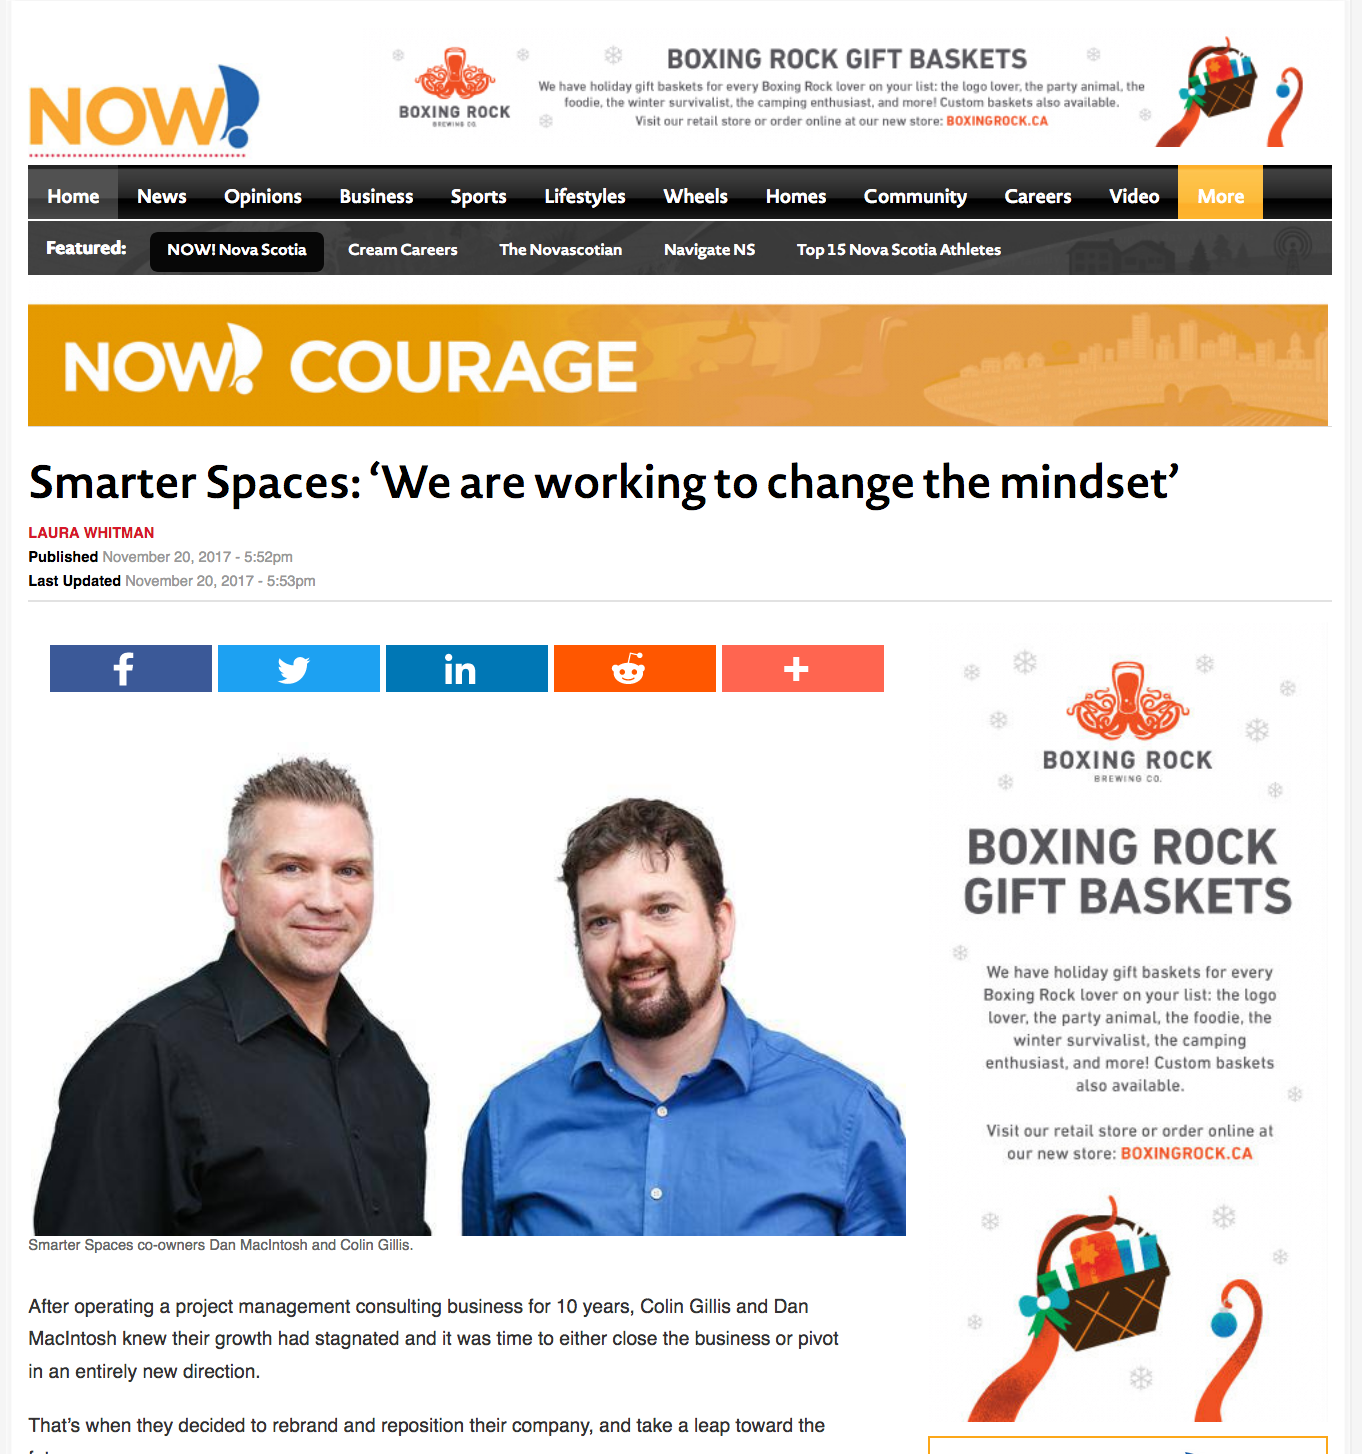 Dan MacIntosh and Colin Gillis of Smarter Spaces. Smarter Spaces won a 2017 Now Award.